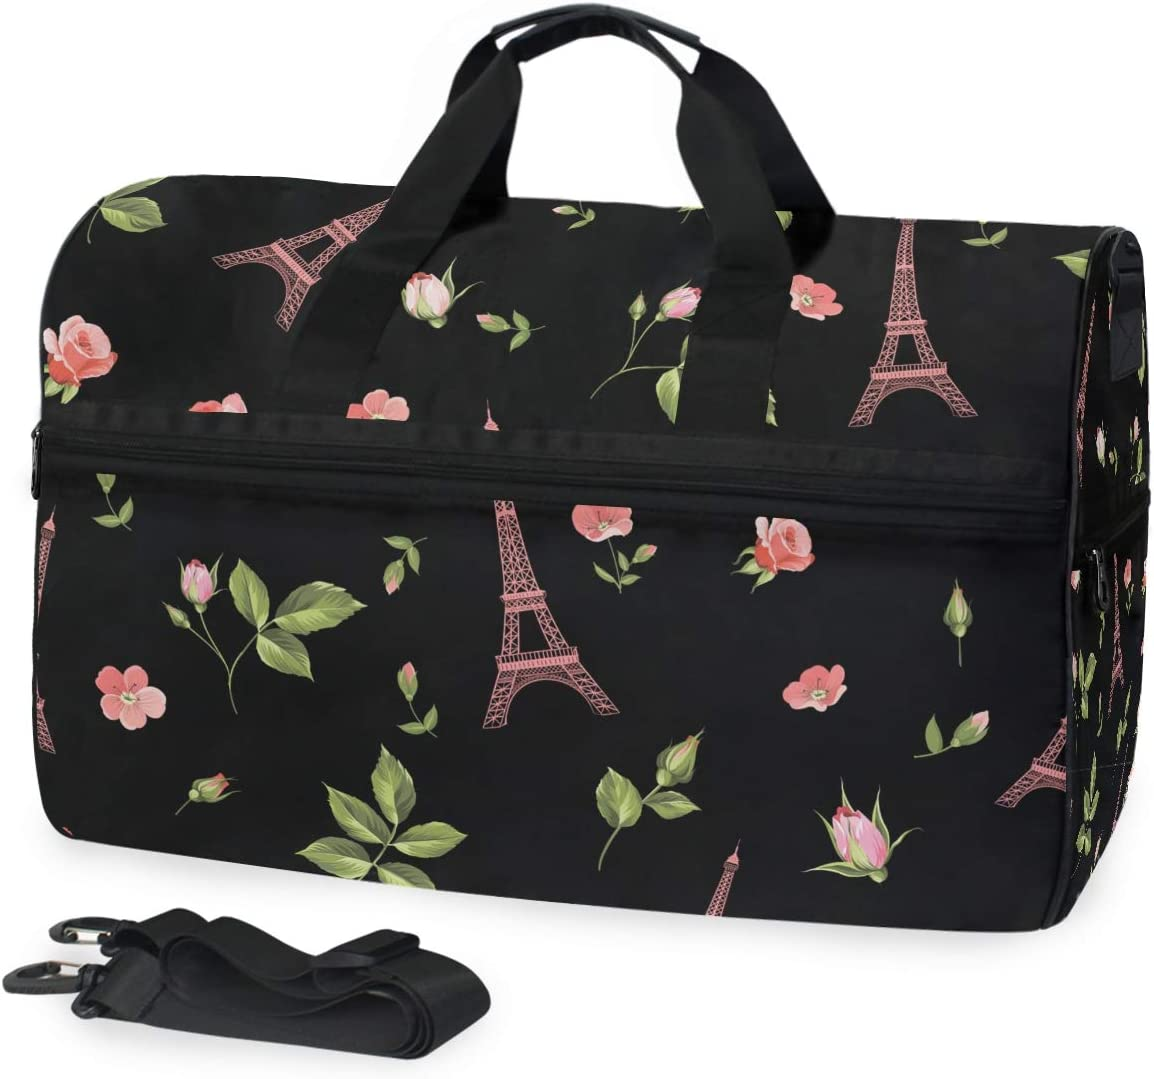 Sports Swim Gym Bag with Shoes Paris Tower Black Gifts quality assurance Compartmen Rose